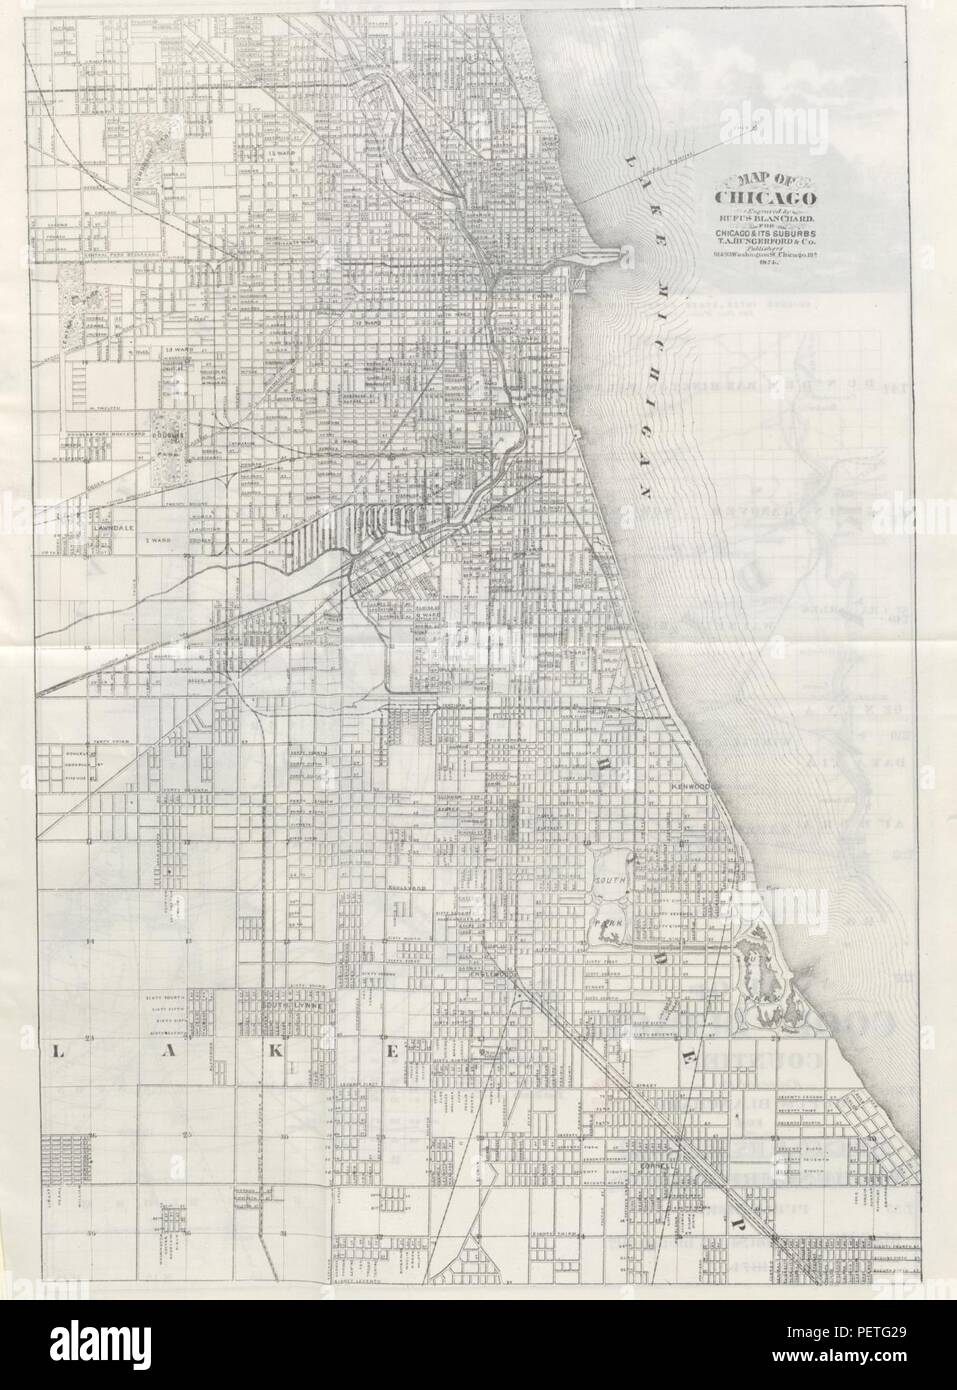 Historic archive Image taken from page 23 of 'Chicago and ... on cook county map, chicago county map, great lakes megalopolis, chicago regions map, west suburban map, metro detroit, dallas/fort worth metroplex, lake county, chicago loop, chicago area map, dekalb county, atlanta metropolitan area, chicago pollution map, chicago restaurants map, cook county, dupage county map, delaware valley, chicago illinois, chicago construction map, chicago crime map, lake county map, naperville map, chicago inner city map, will county, chicago loop map, new york metropolitan area, dupage county, chicagoland map, oak park, chicago church map, aurora map, illinois map, chicago economy map, greater houston,